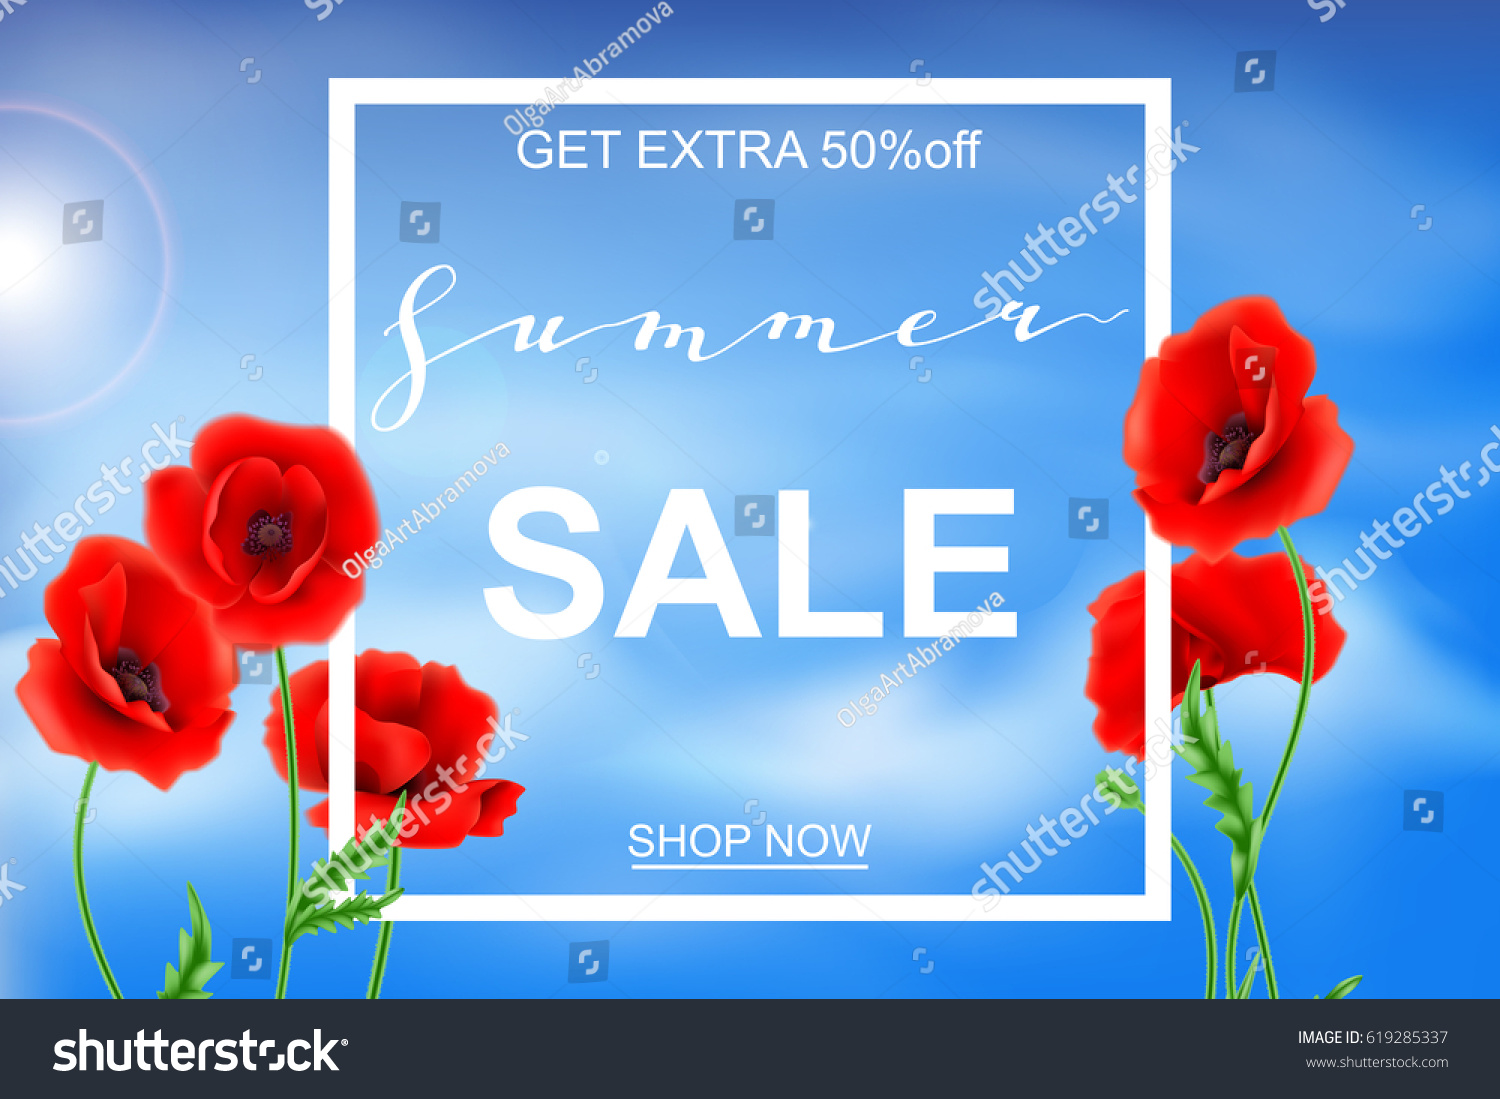 Advertisement about summer sale on background stock vector 619285337 advertisement about the summer sale on background with beautiful poppy flowers lettering calligraphy mightylinksfo